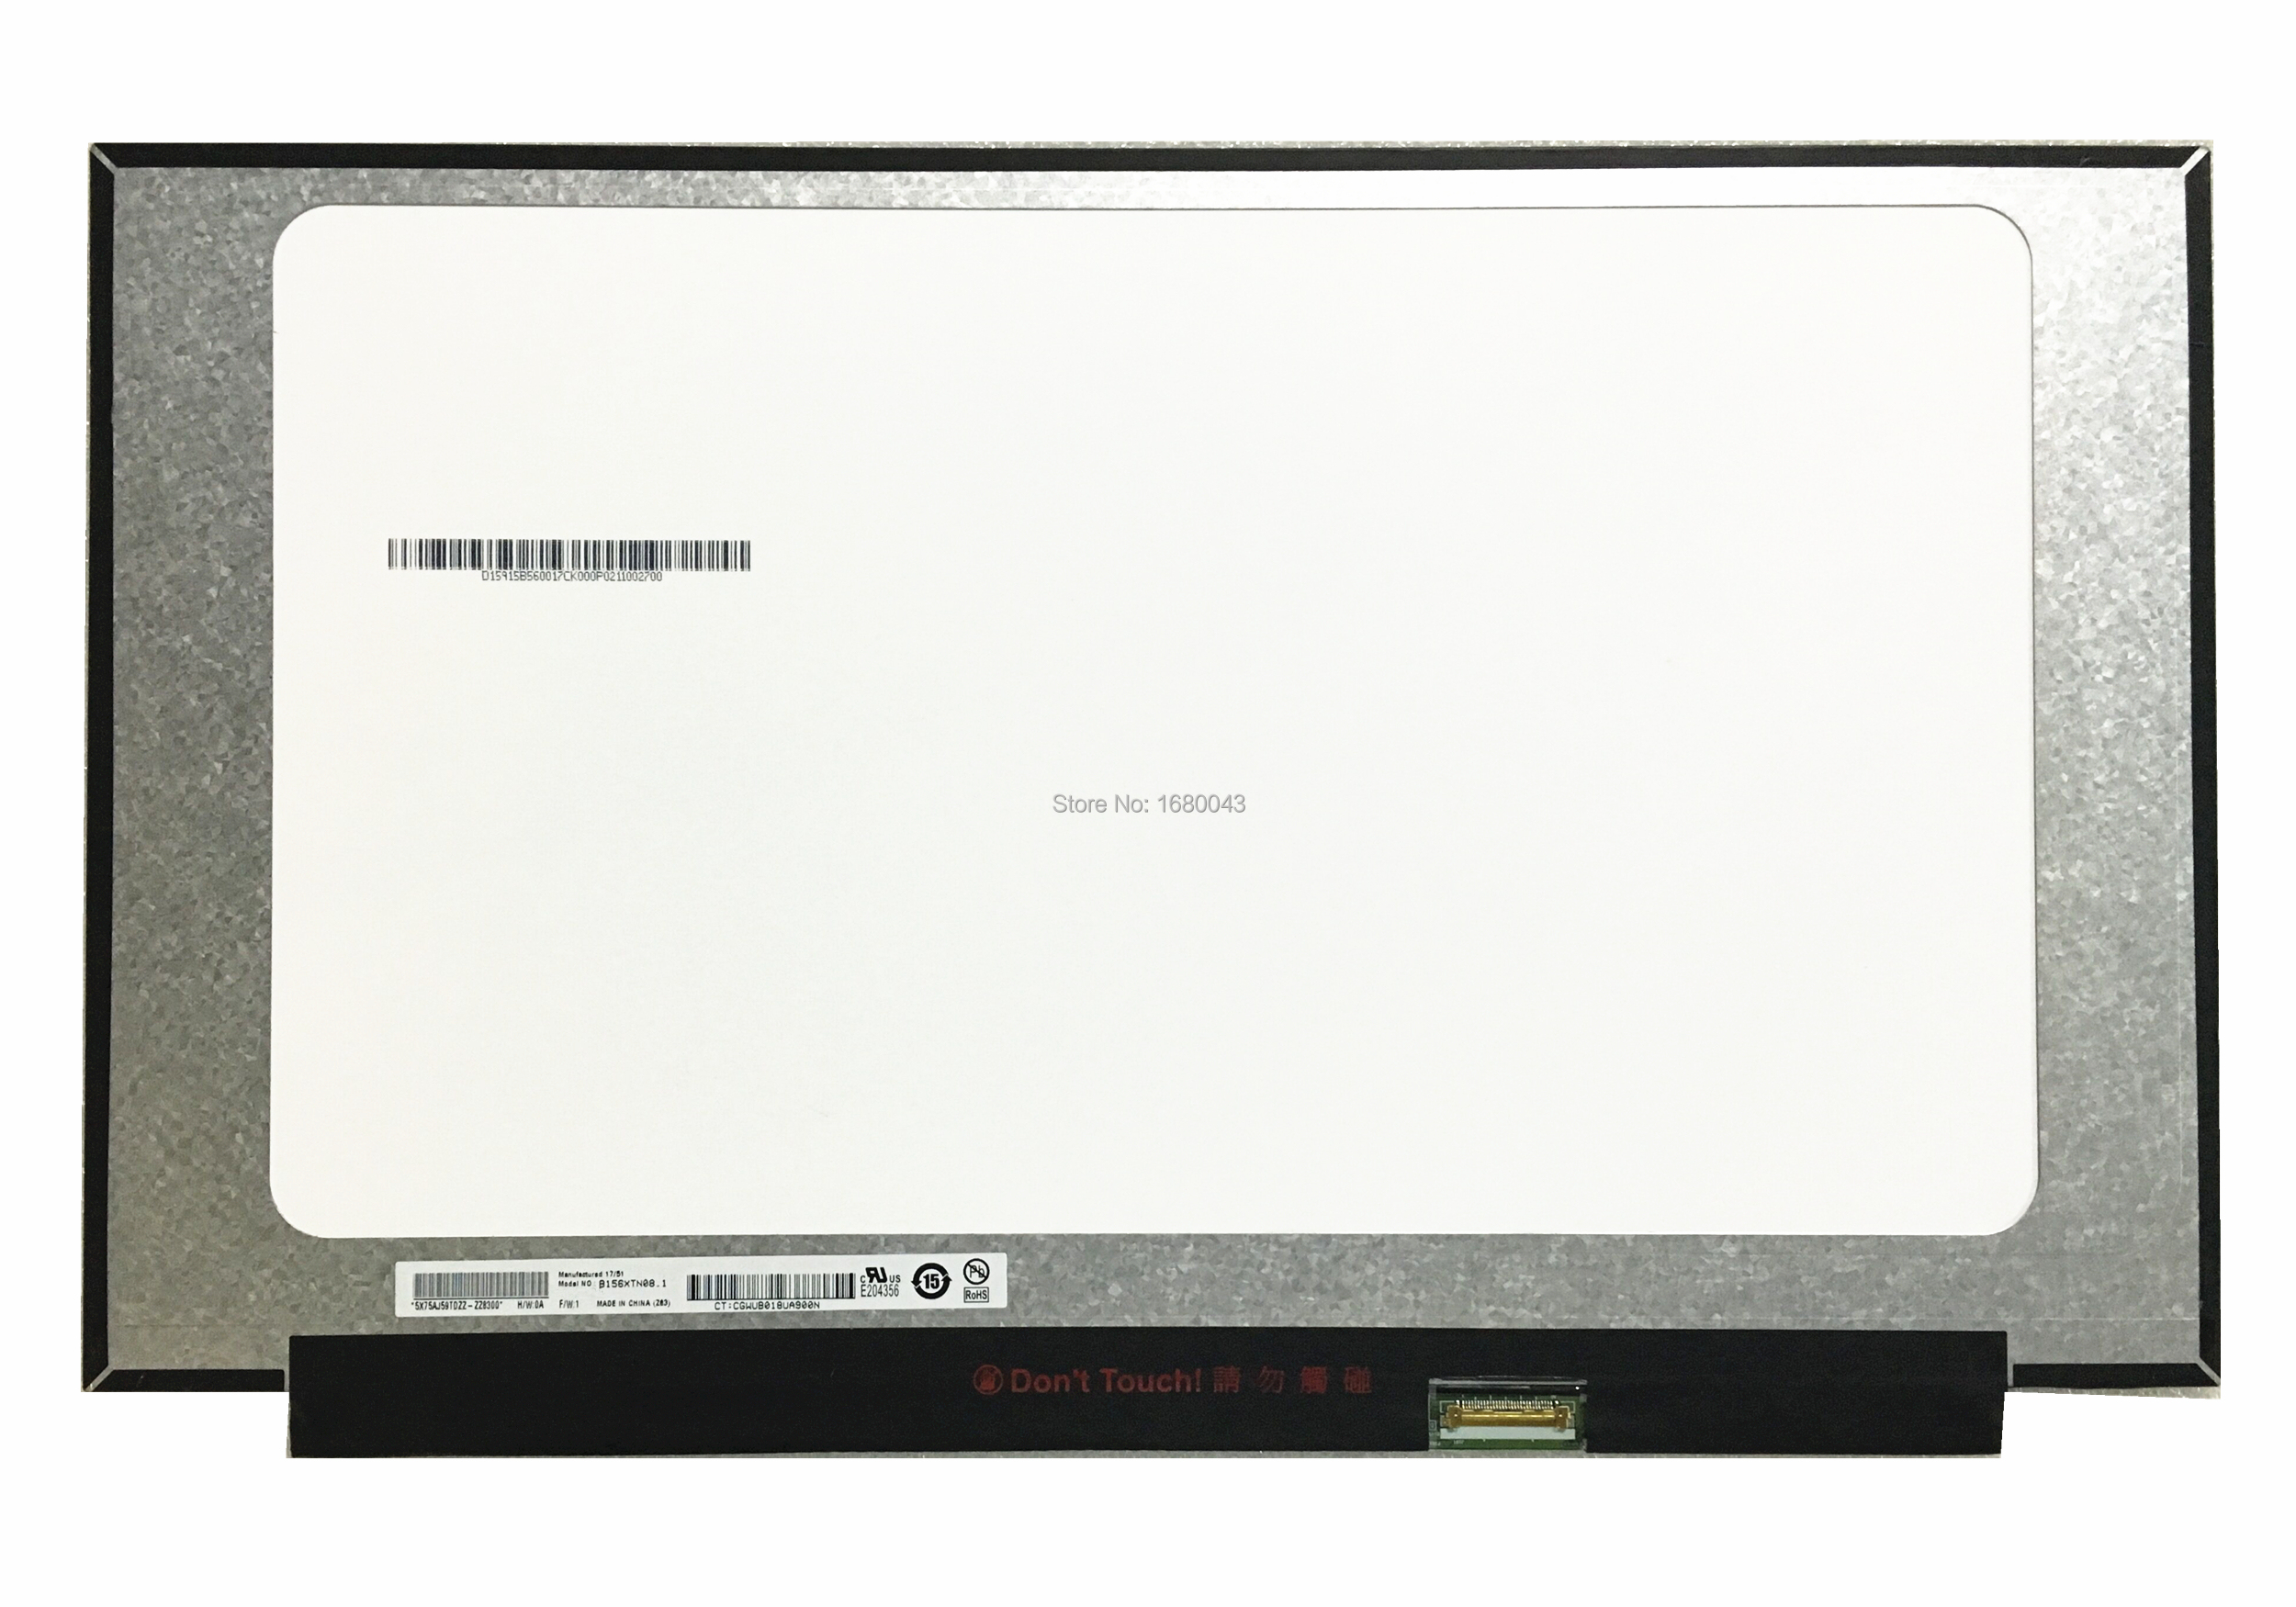 B156XTN08.1 EDP 1366x768 with no screw holes 15.6 LED LCD Screen Display Panel 30 PIN free shipping b125xtn02 0 lp125wh2 tpb1 hb125wx1 201 for dell e7240 e7250 lcd screen edp 768 30 pin left right 3 screw holes